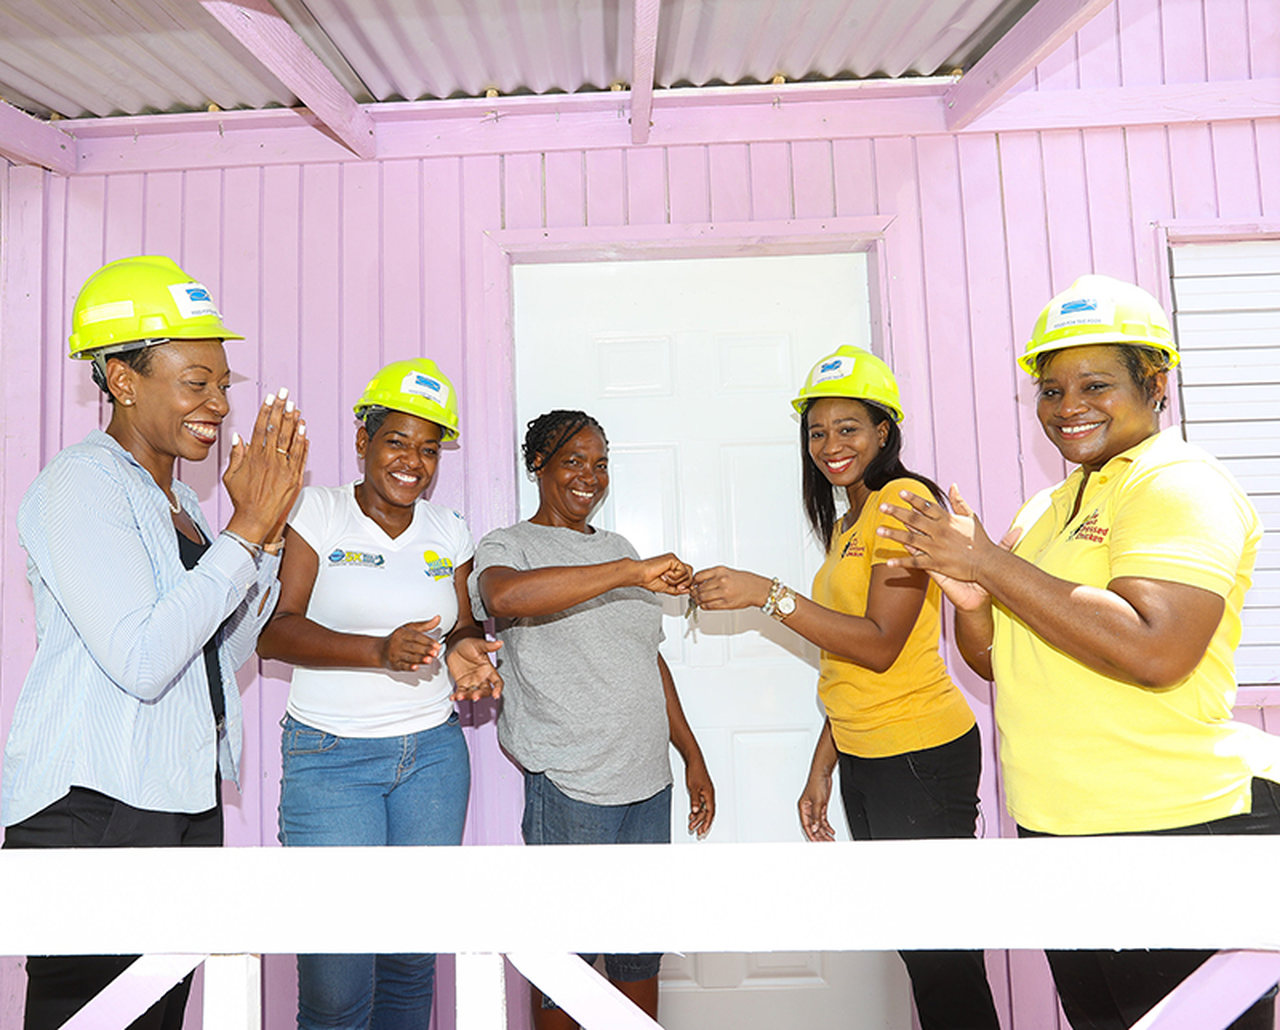 Rochelle Cameron, Assistant Vice President HRD & PR, Jamaica Broilers Group (left) applauds while Avadaugn Sinclair, BDC Marketing Manager (second right) hands Mrs. Howell (centre) the keys to her new home. Looking on are (left-right) Marsha Burrell-Rose, Development and Marketing Manager, Food for the Poor and Lorraine Kemble, BDC Brand Manager.